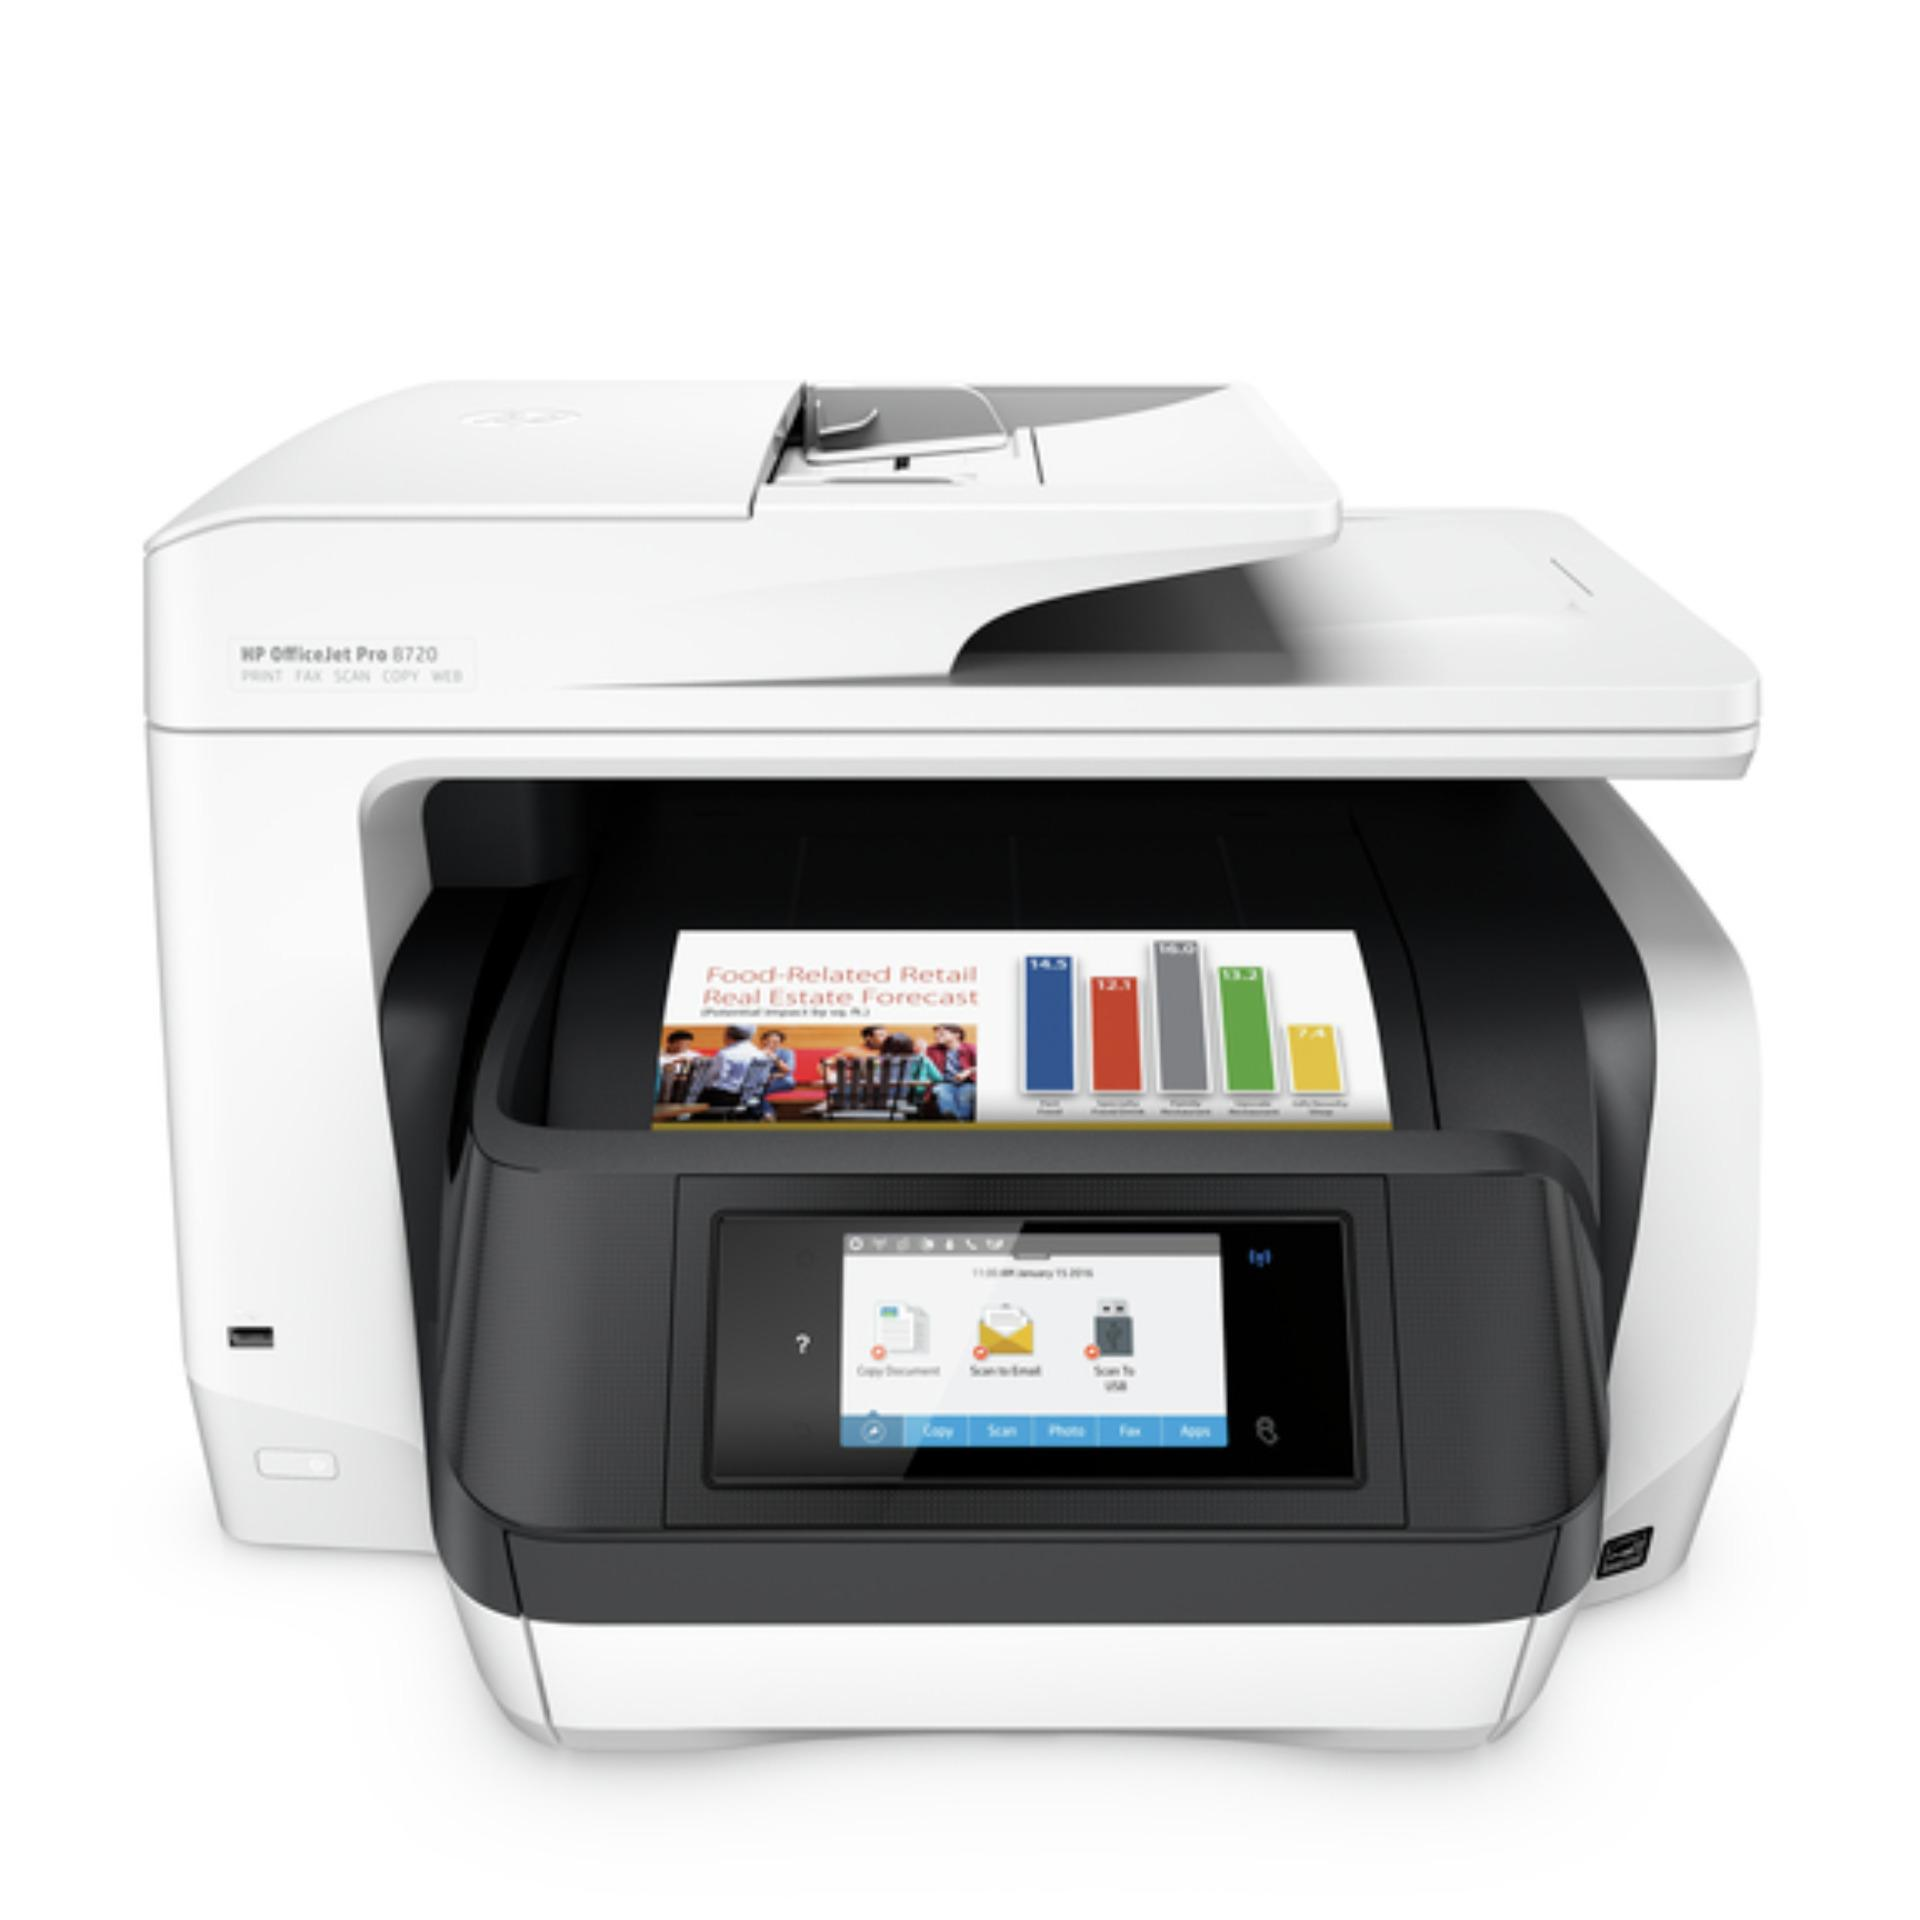 Philippines Best Buy Printers Hp Printer 27 07 2018 685 Black Ink Cartridge Cz121aa Officejet Pro 8720 All In One Print Fax Scan Copy And Wireless